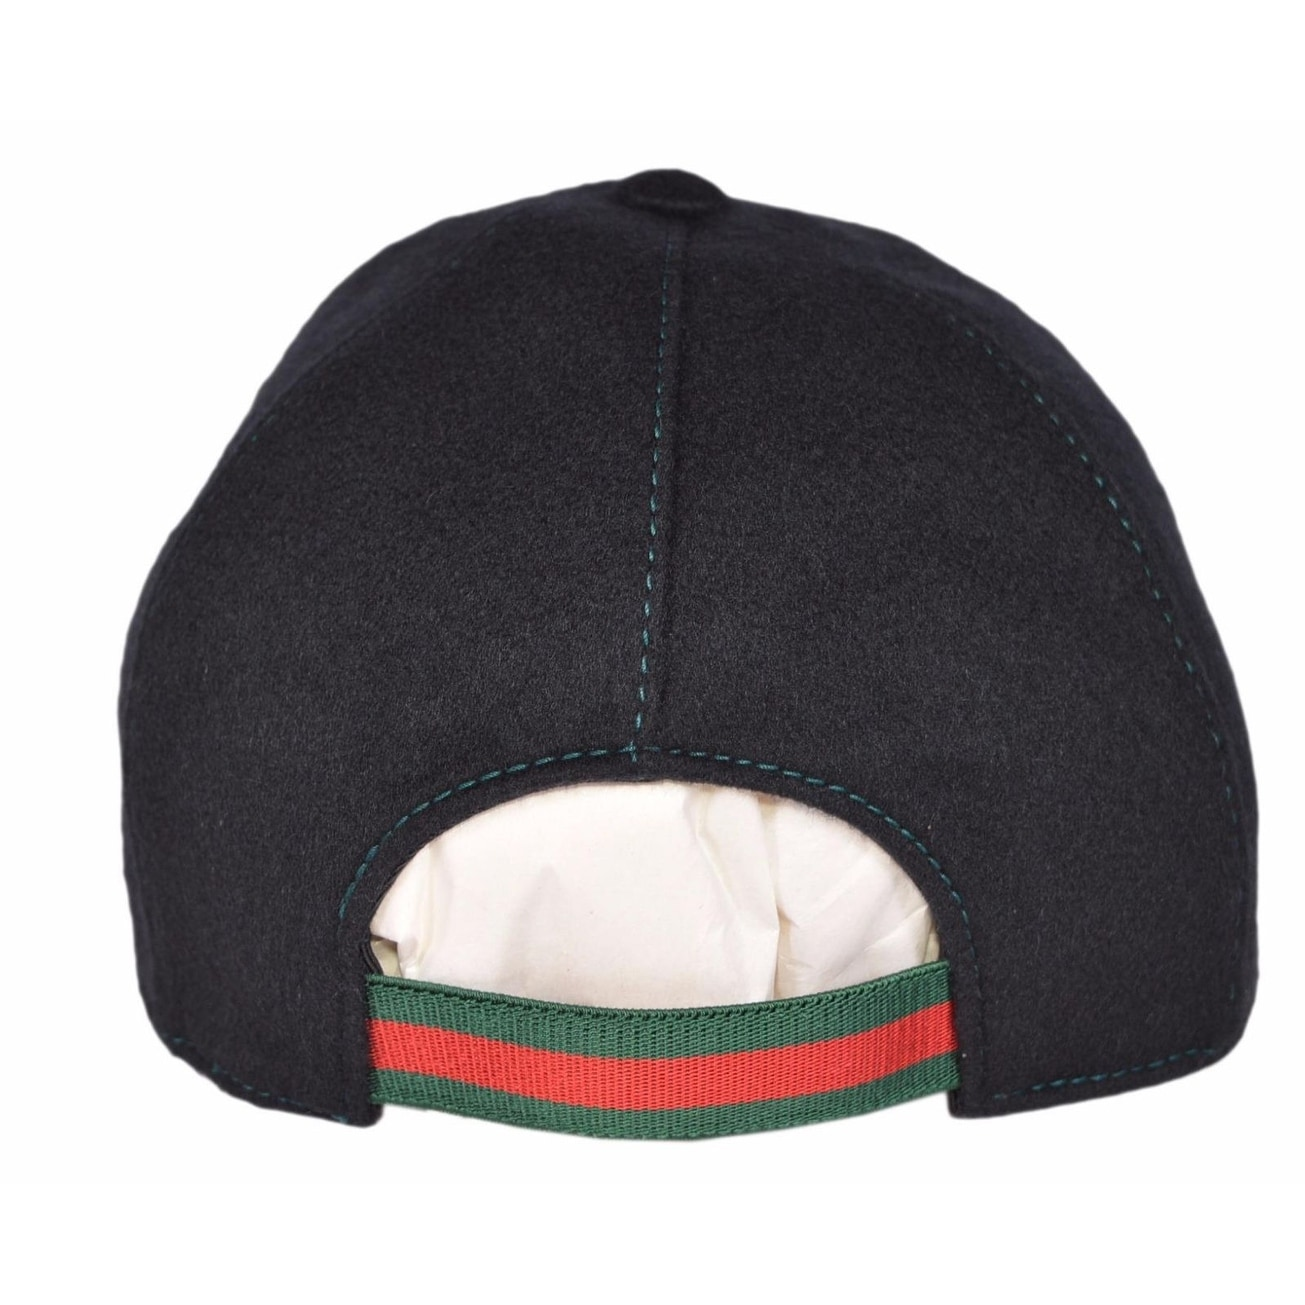 8b30a6a768d Shop Gucci 353505 Men s Black Felted Wool Red Green Band GG Baseball Cap Hat  Medium - Free Shipping Today - Overstock - 21498427